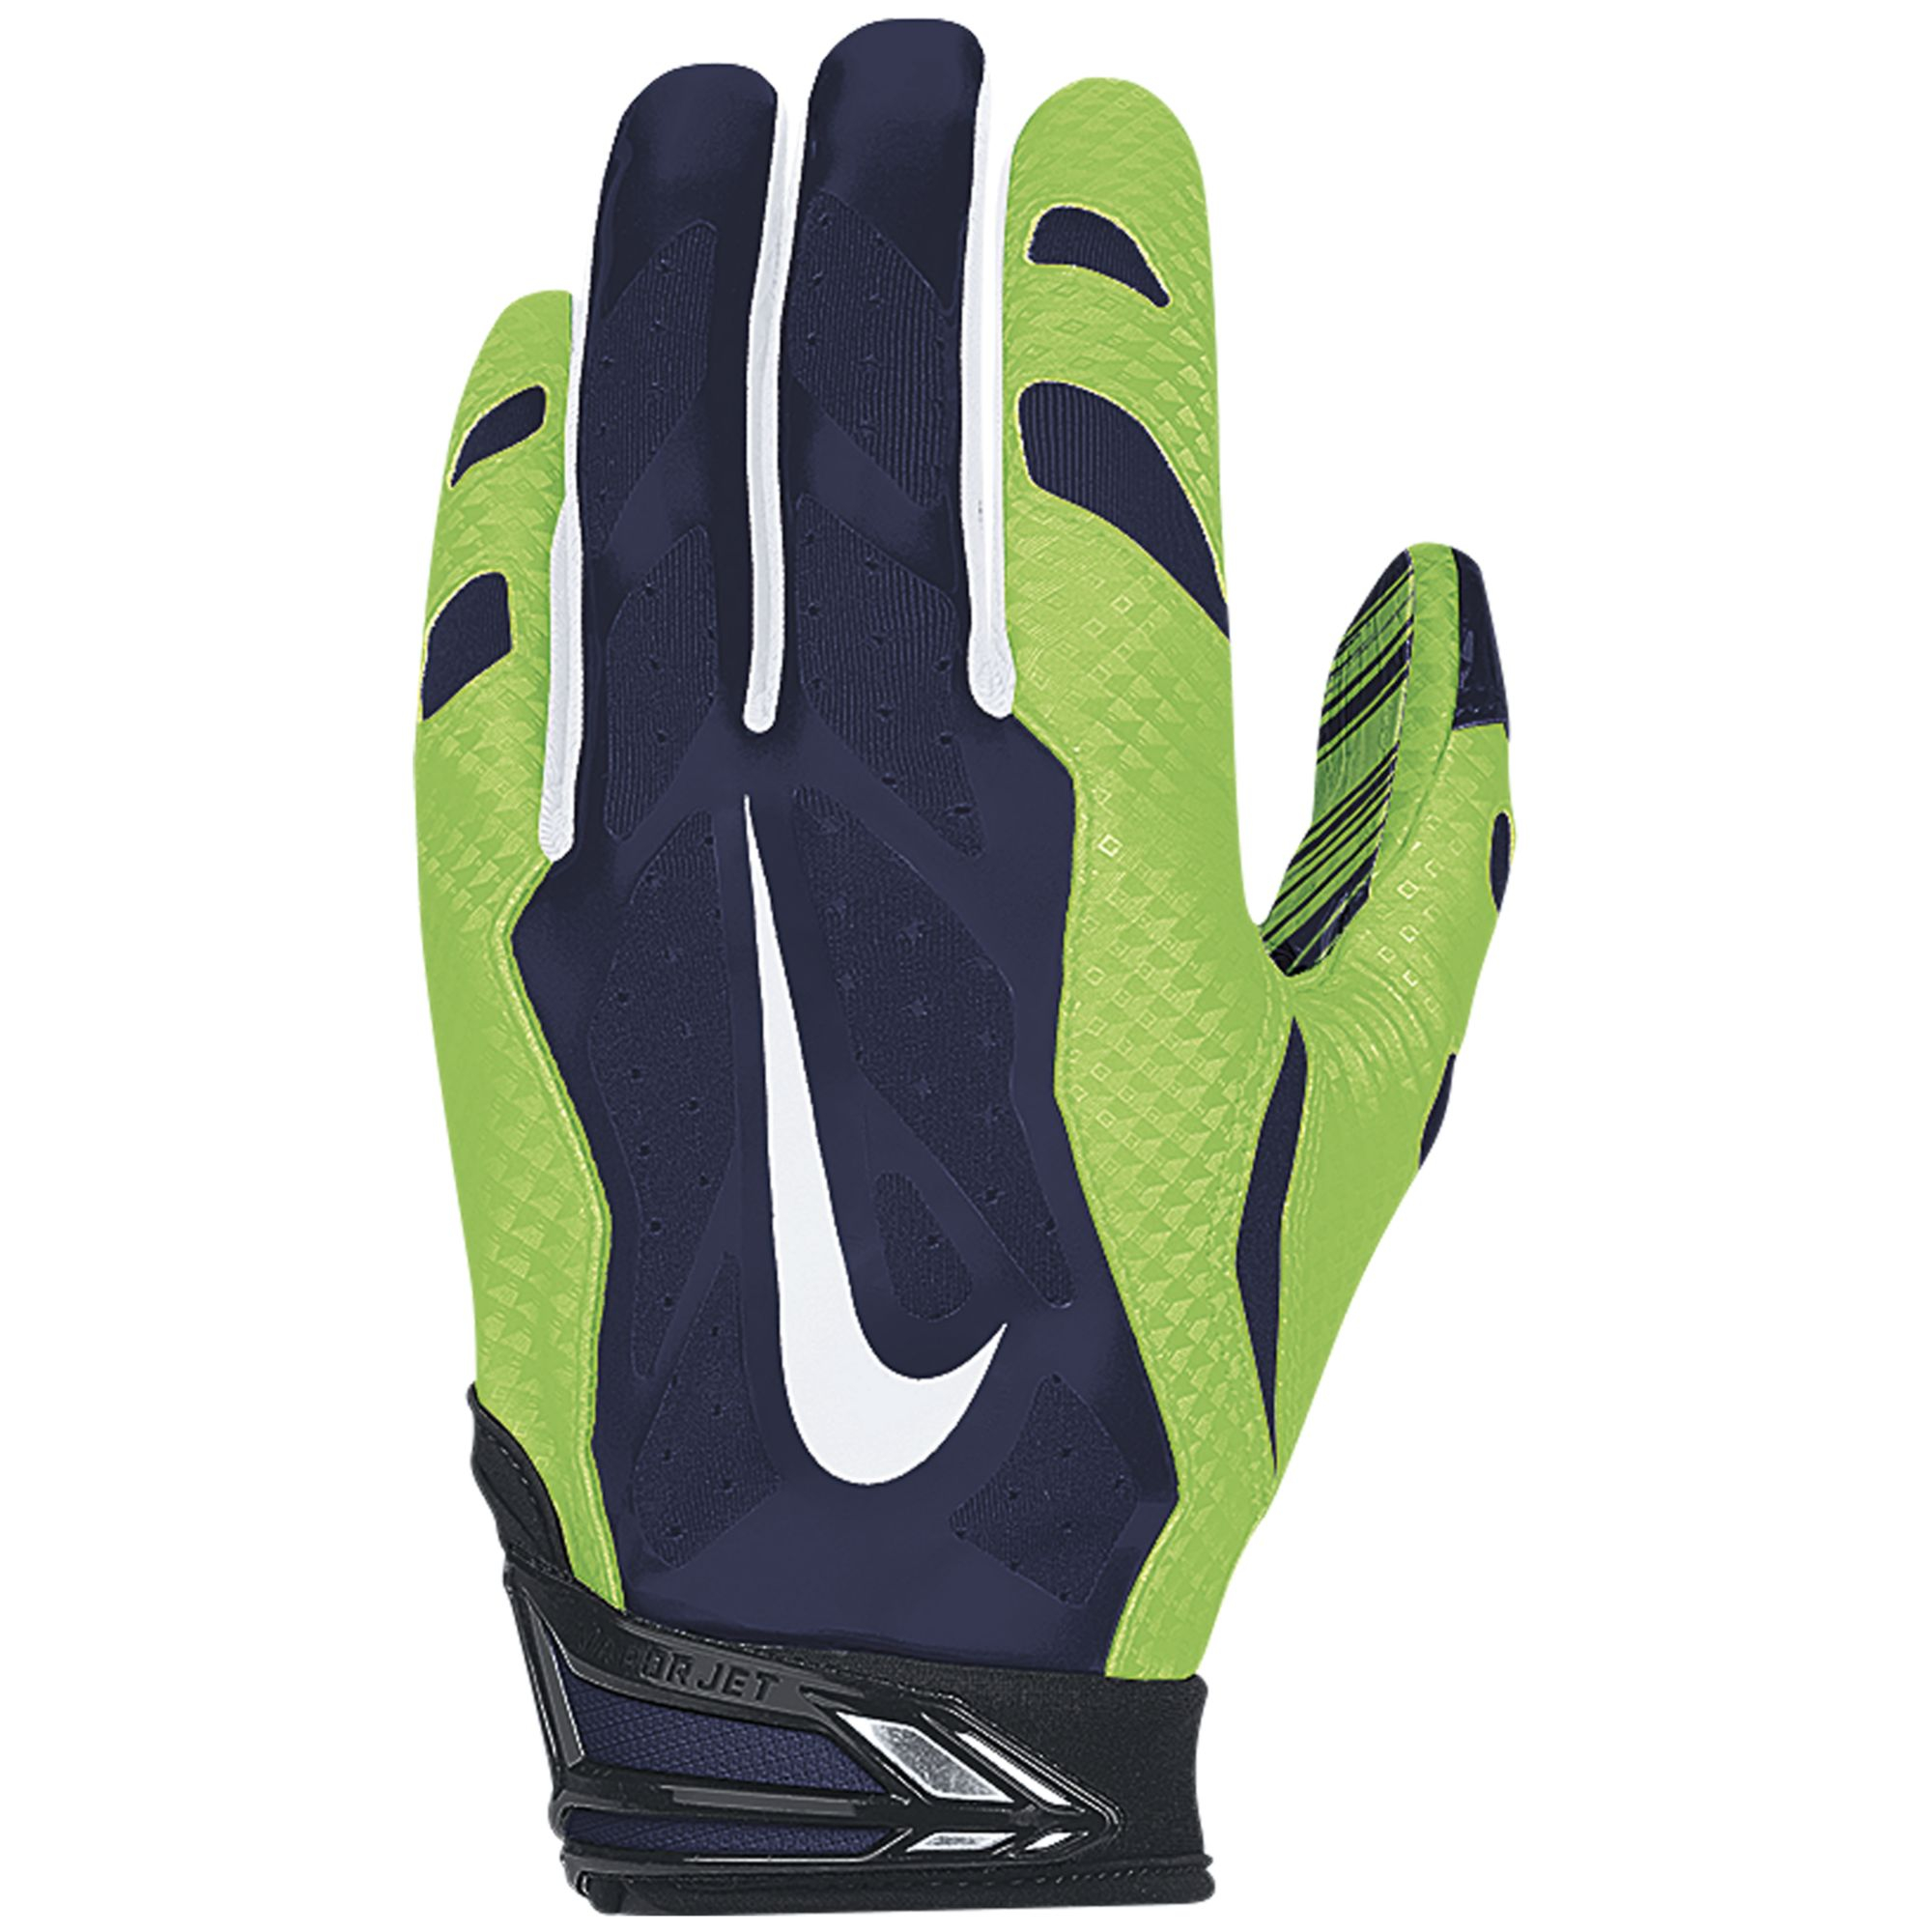 25 30 Seattle: Nike Seattle Seahawks 30 Vapor Jet Gloves In Black